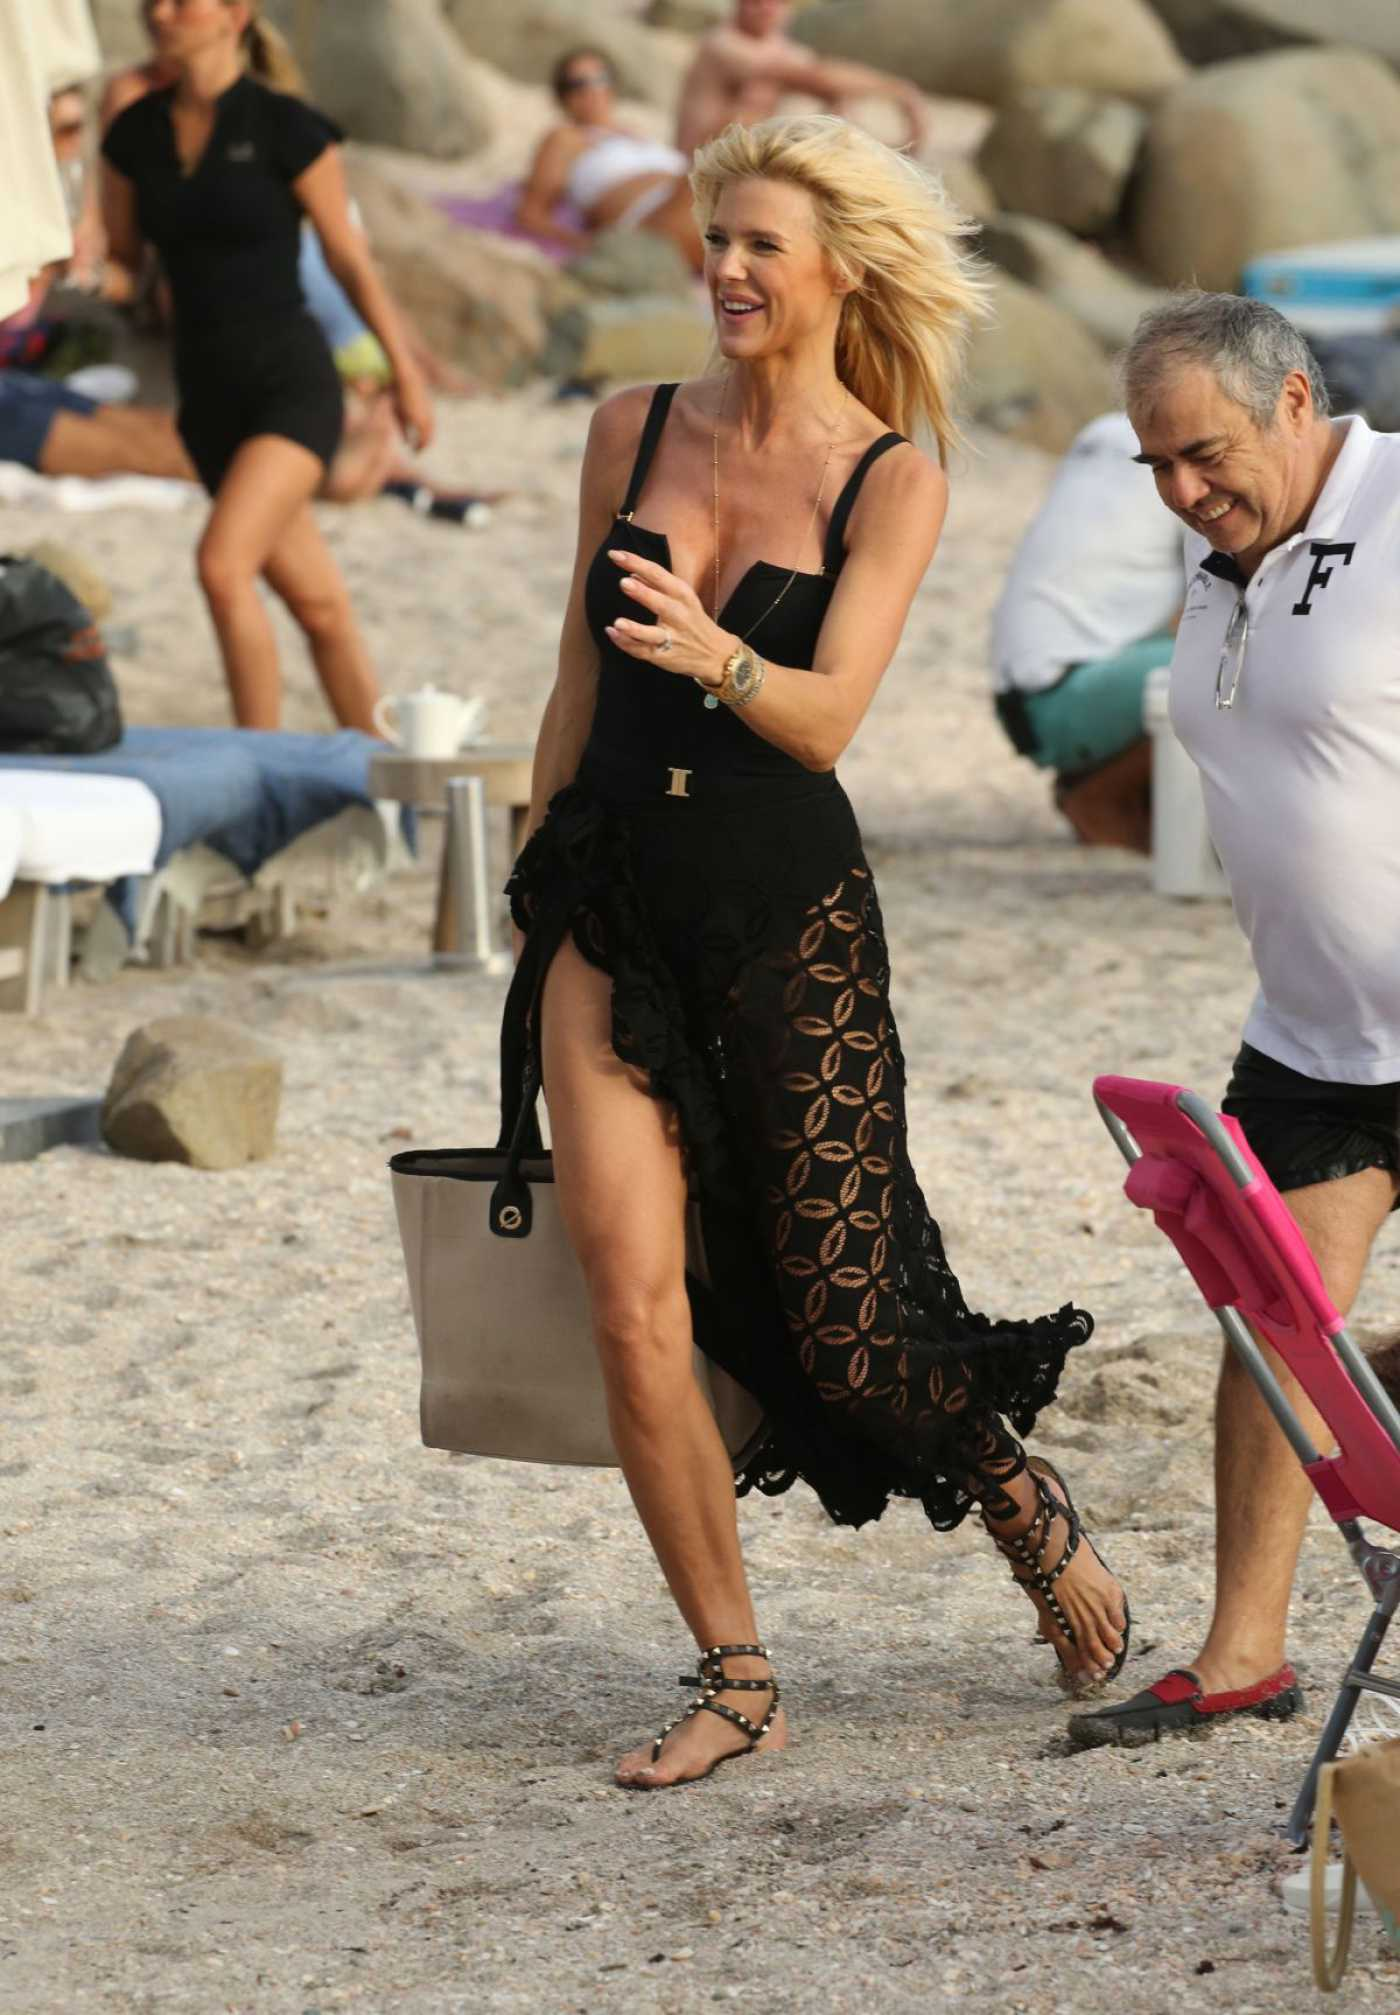 Victoria Silvstedt in a Black Dress on the Beach in St. Barth 12/29/2019